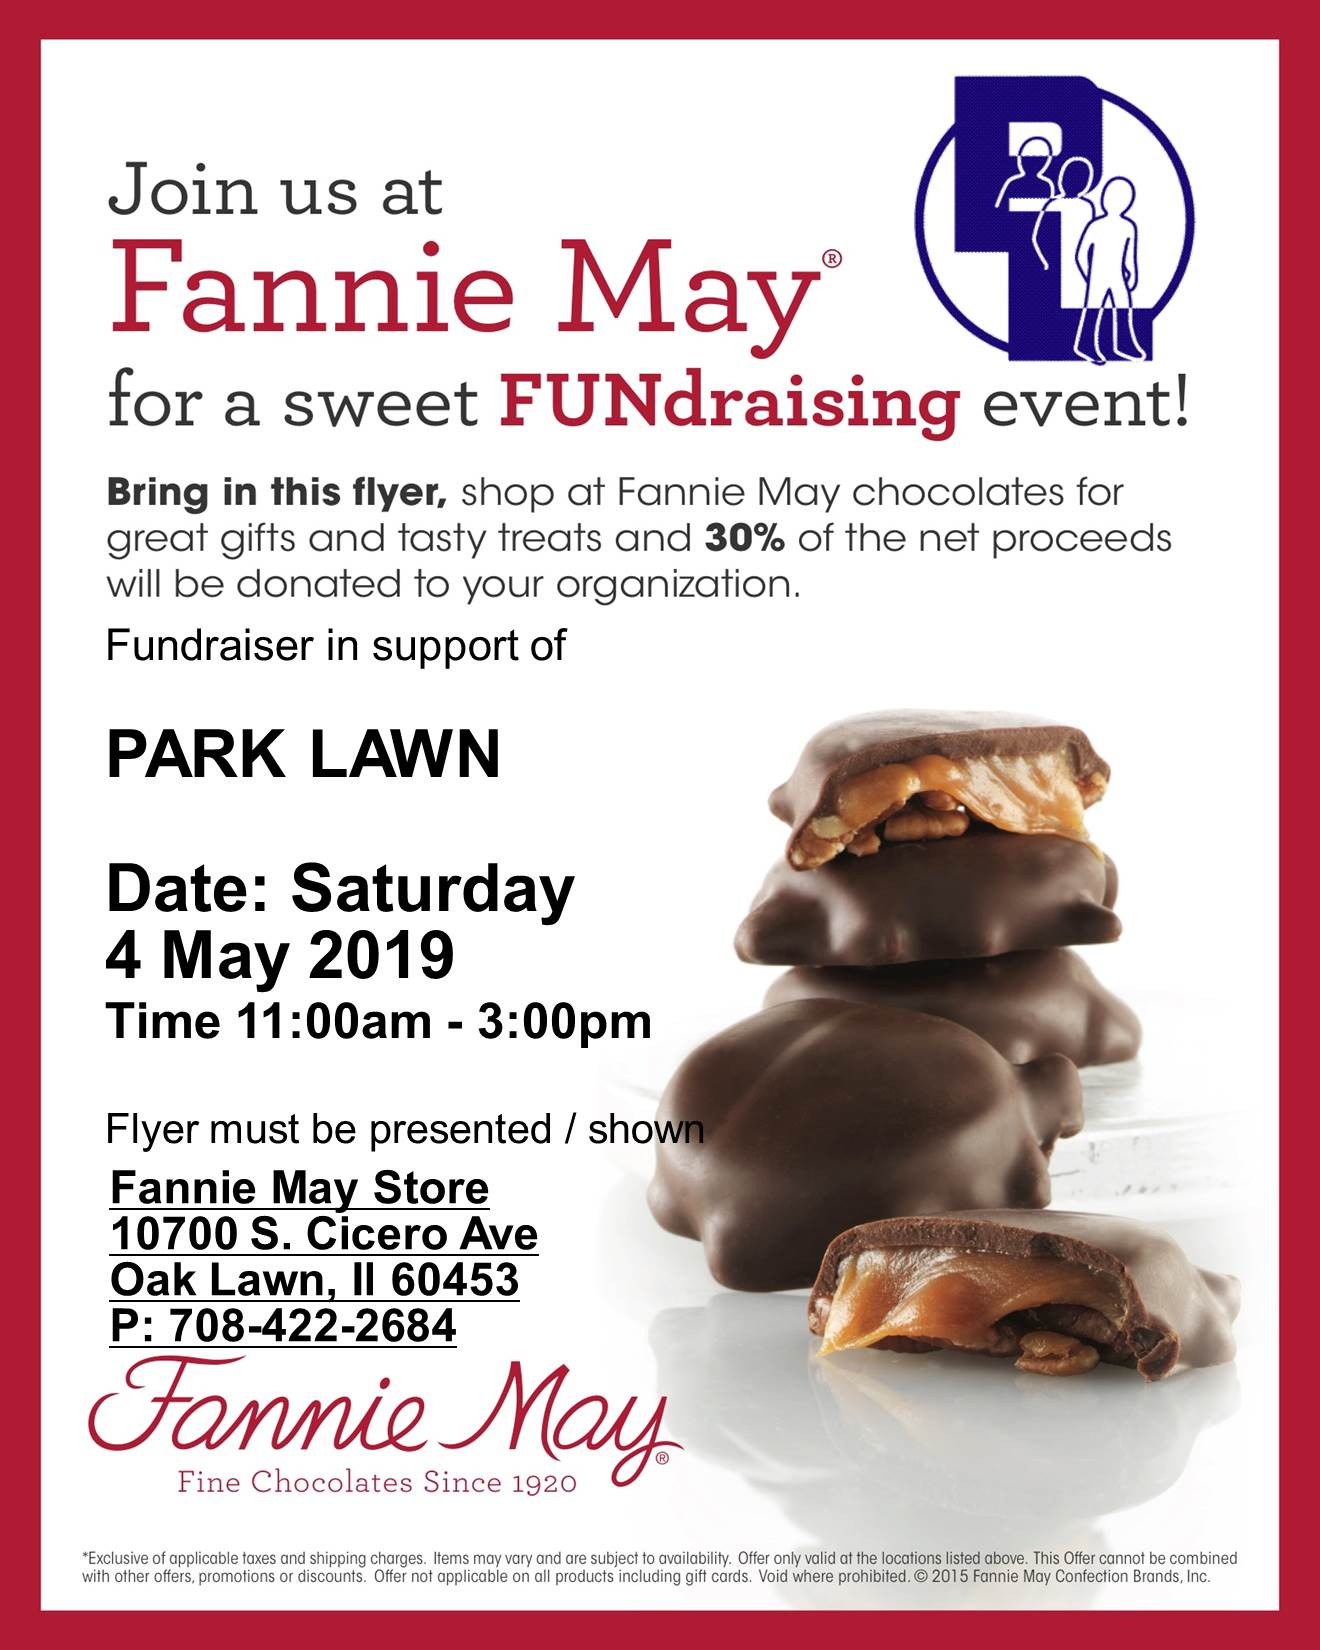 Fannie May Park Lawn FUNdraising Event